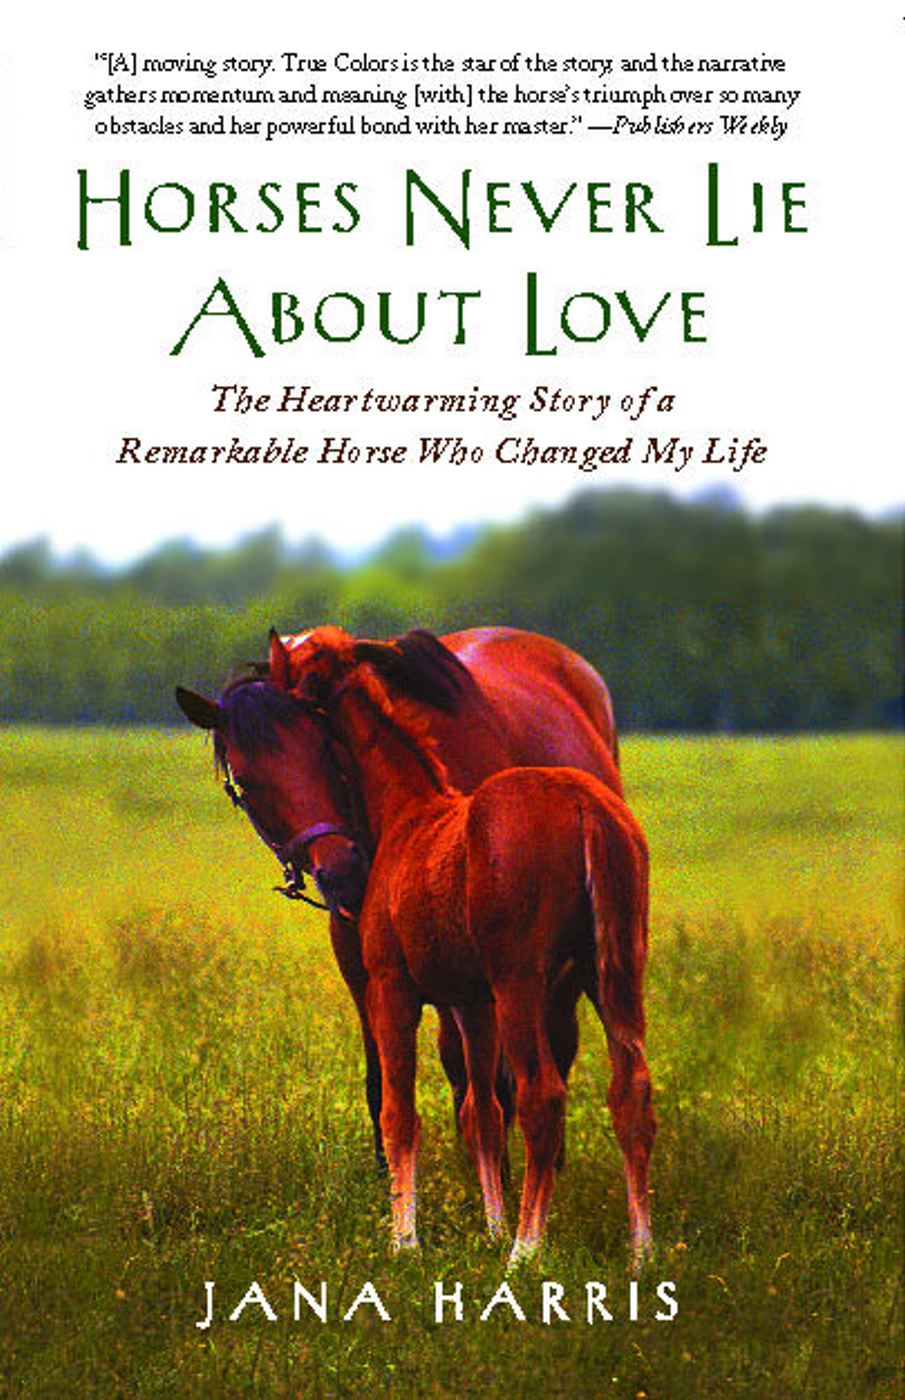 Horses Never Lie about Love By: Jana Harris